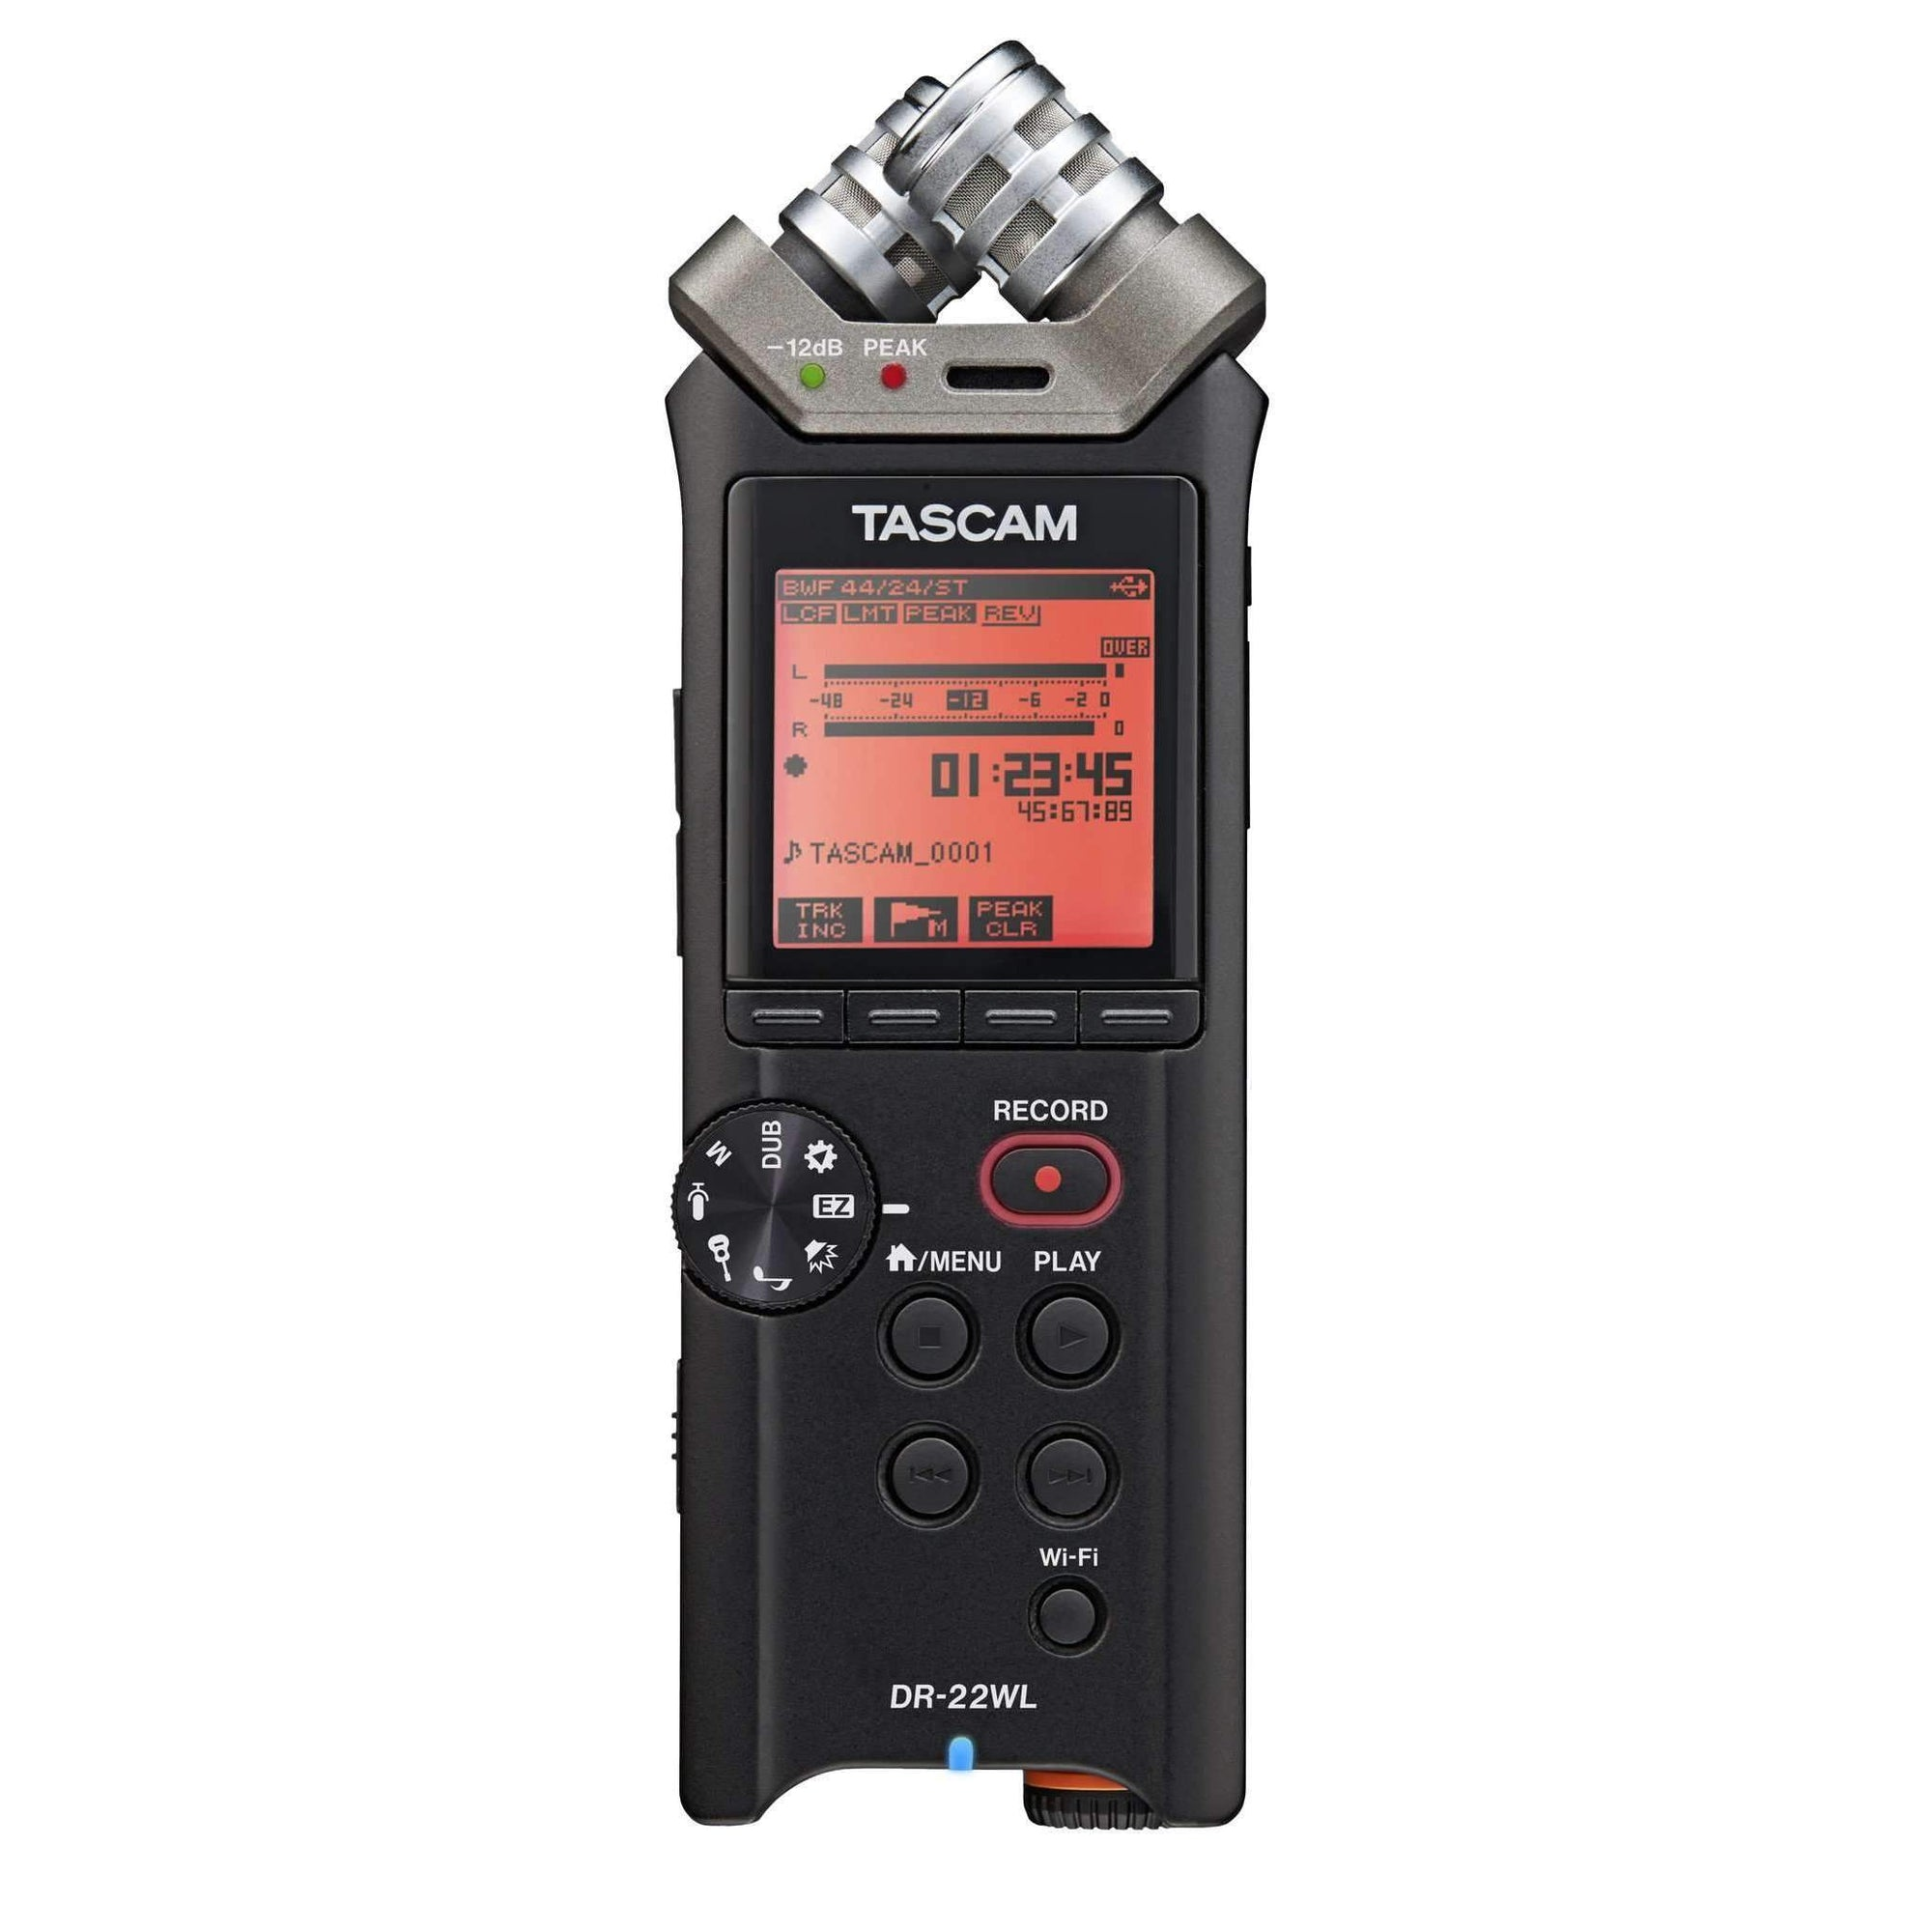 Industrie Music,Tascam DR-22WL Portable Digital Recorder